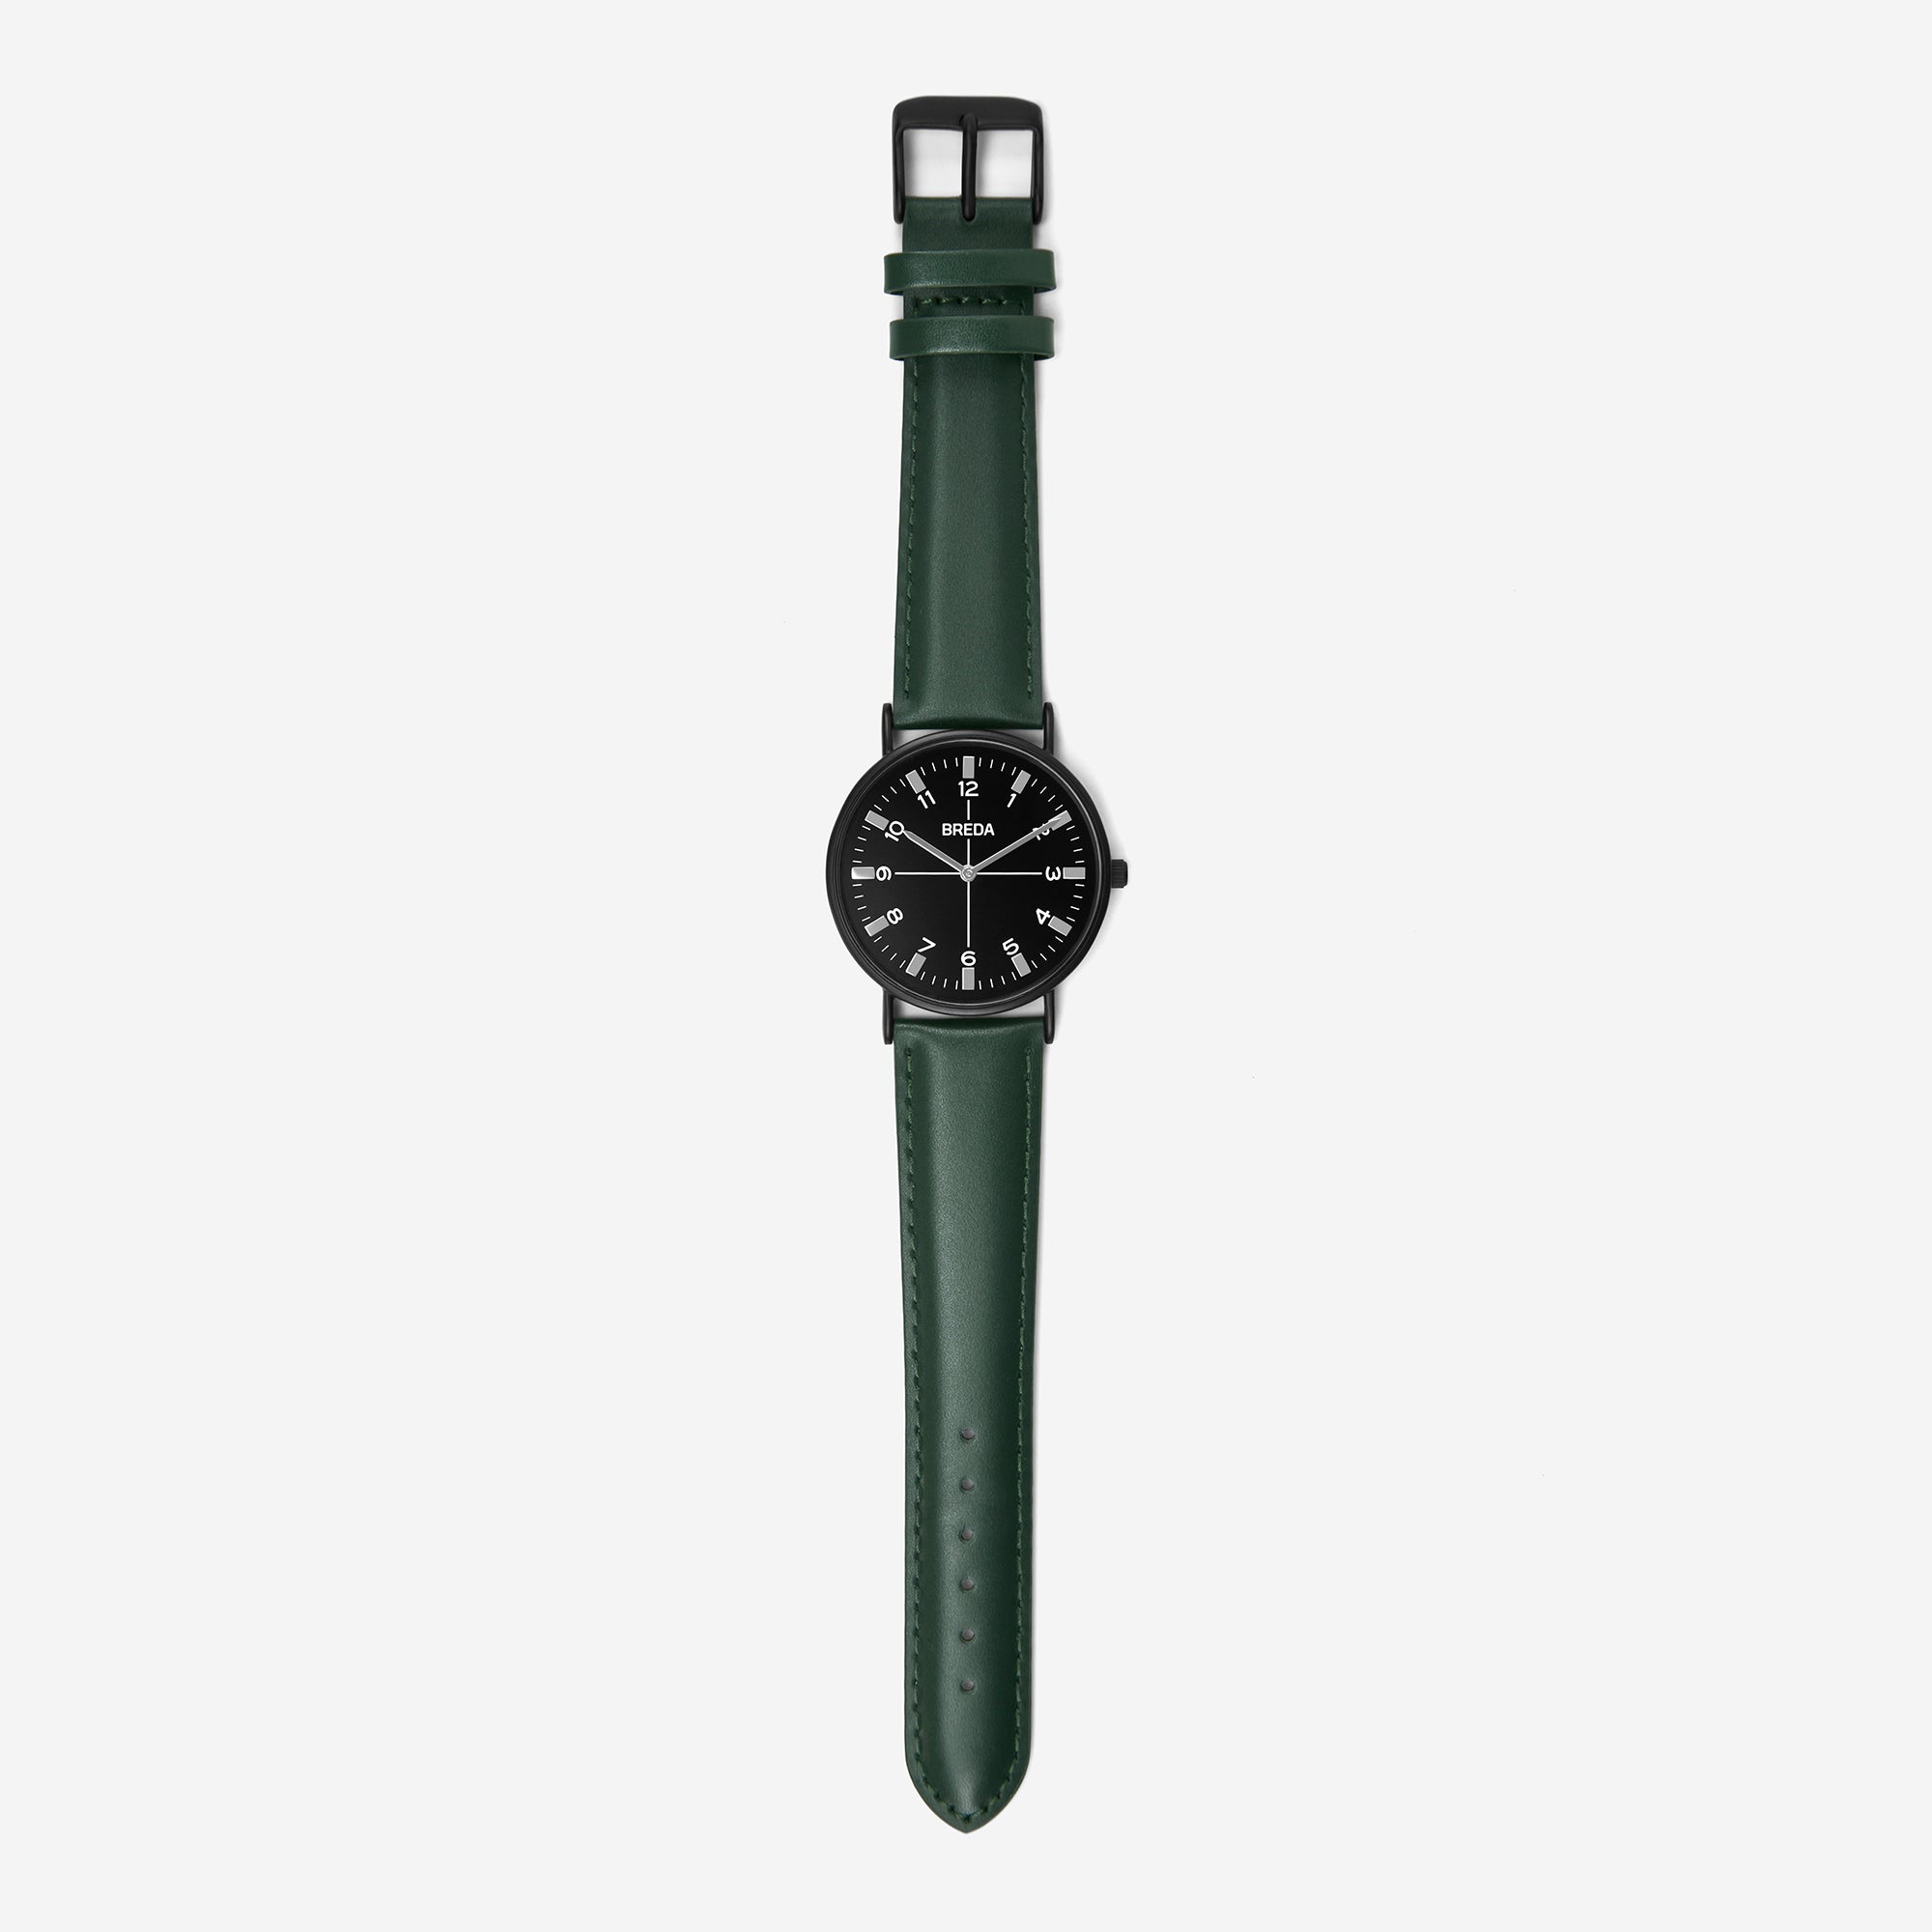 //cdn.shopify.com/s/files/1/0879/6650/products/BREDA-Belmont-1646j-Black-Green-Watch-Long_d372e2ca-97cc-4076-b451-530b4f3deafe_1024x1024.jpg?v=1543249391